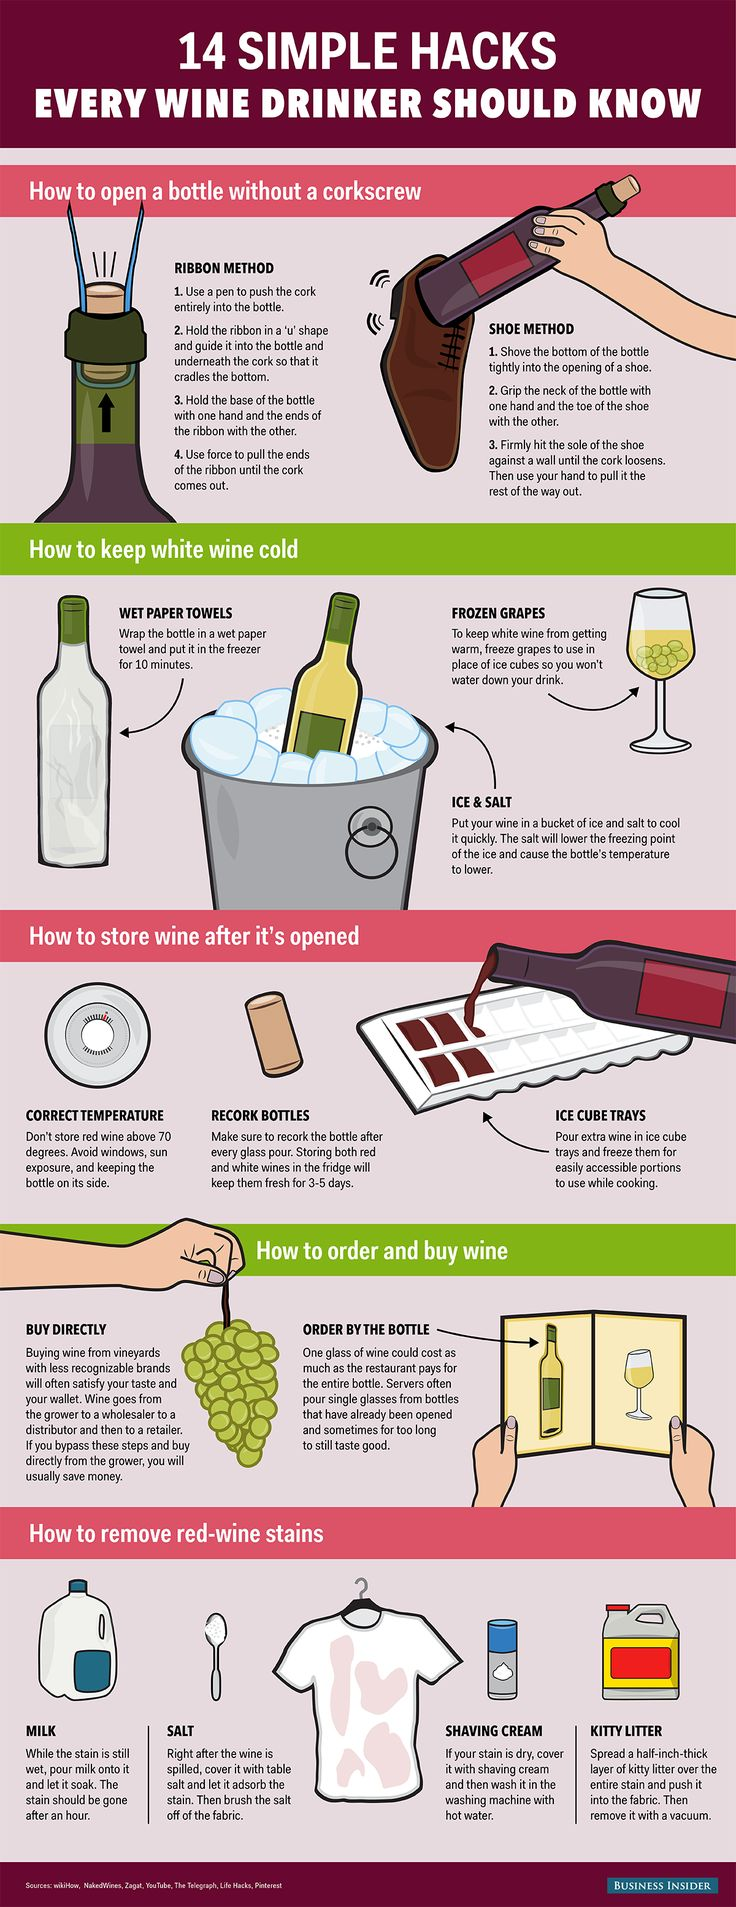 Wine hacks everyone should know